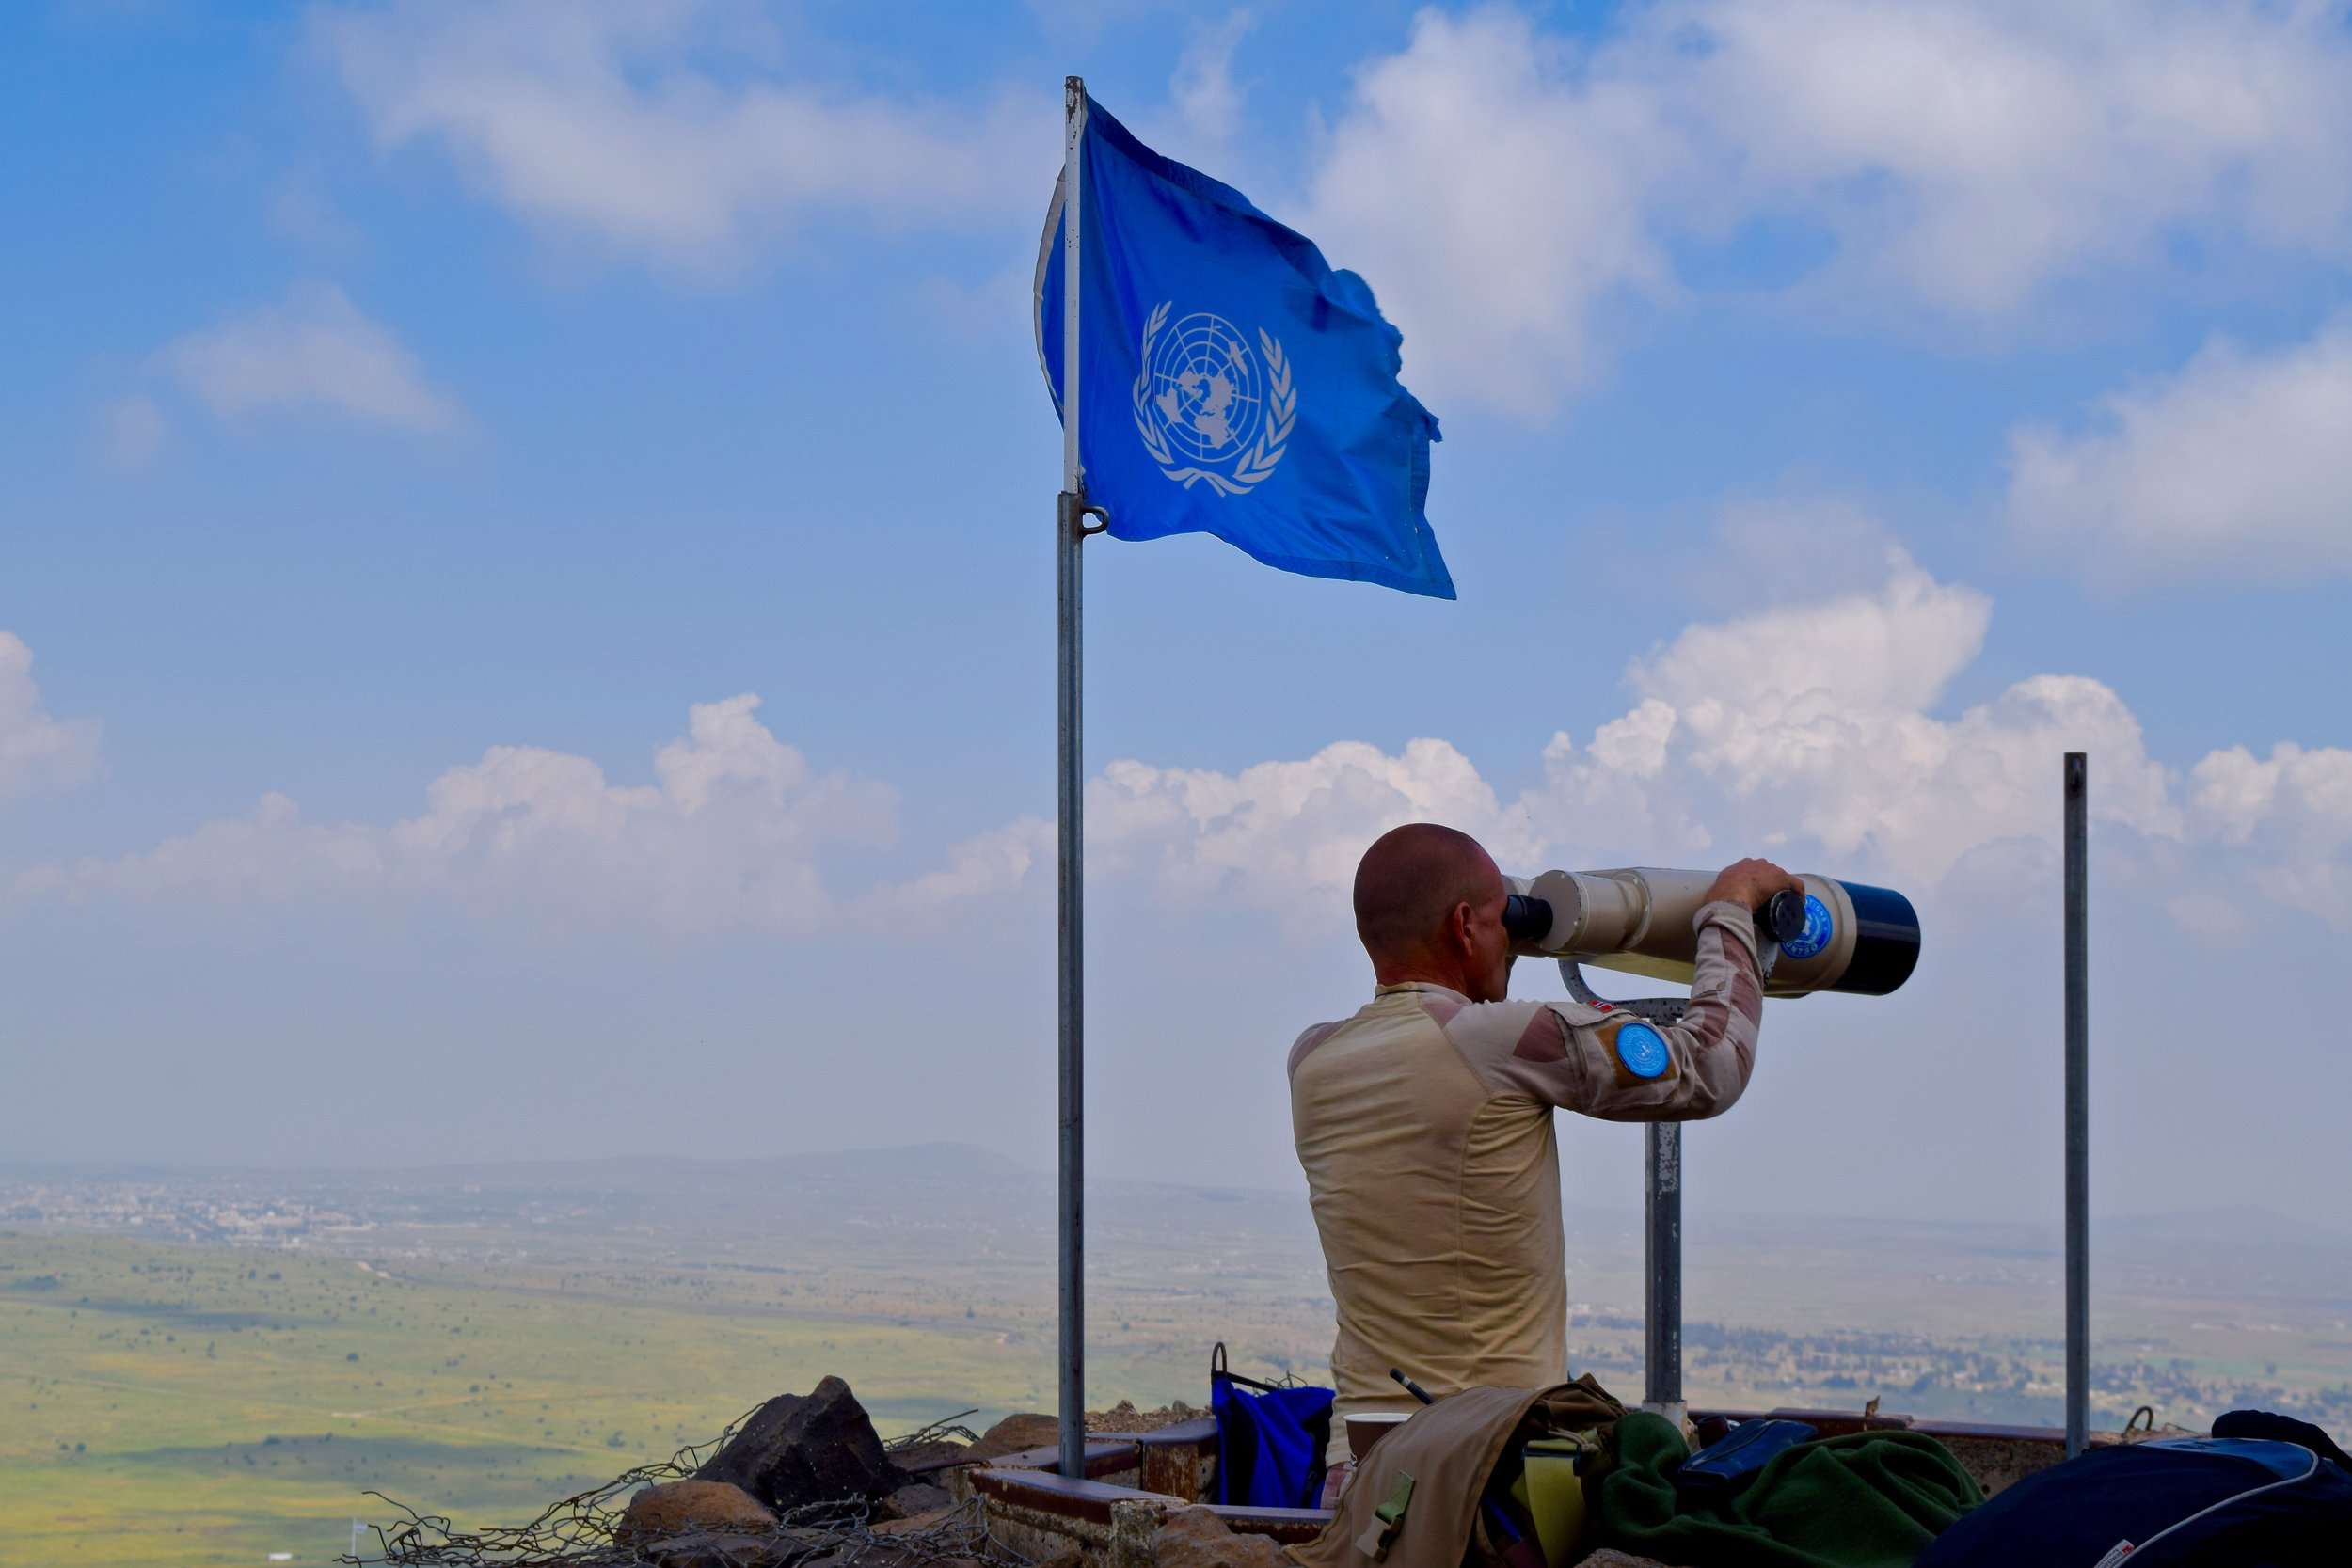 UN peacekeeper monitoring the valley